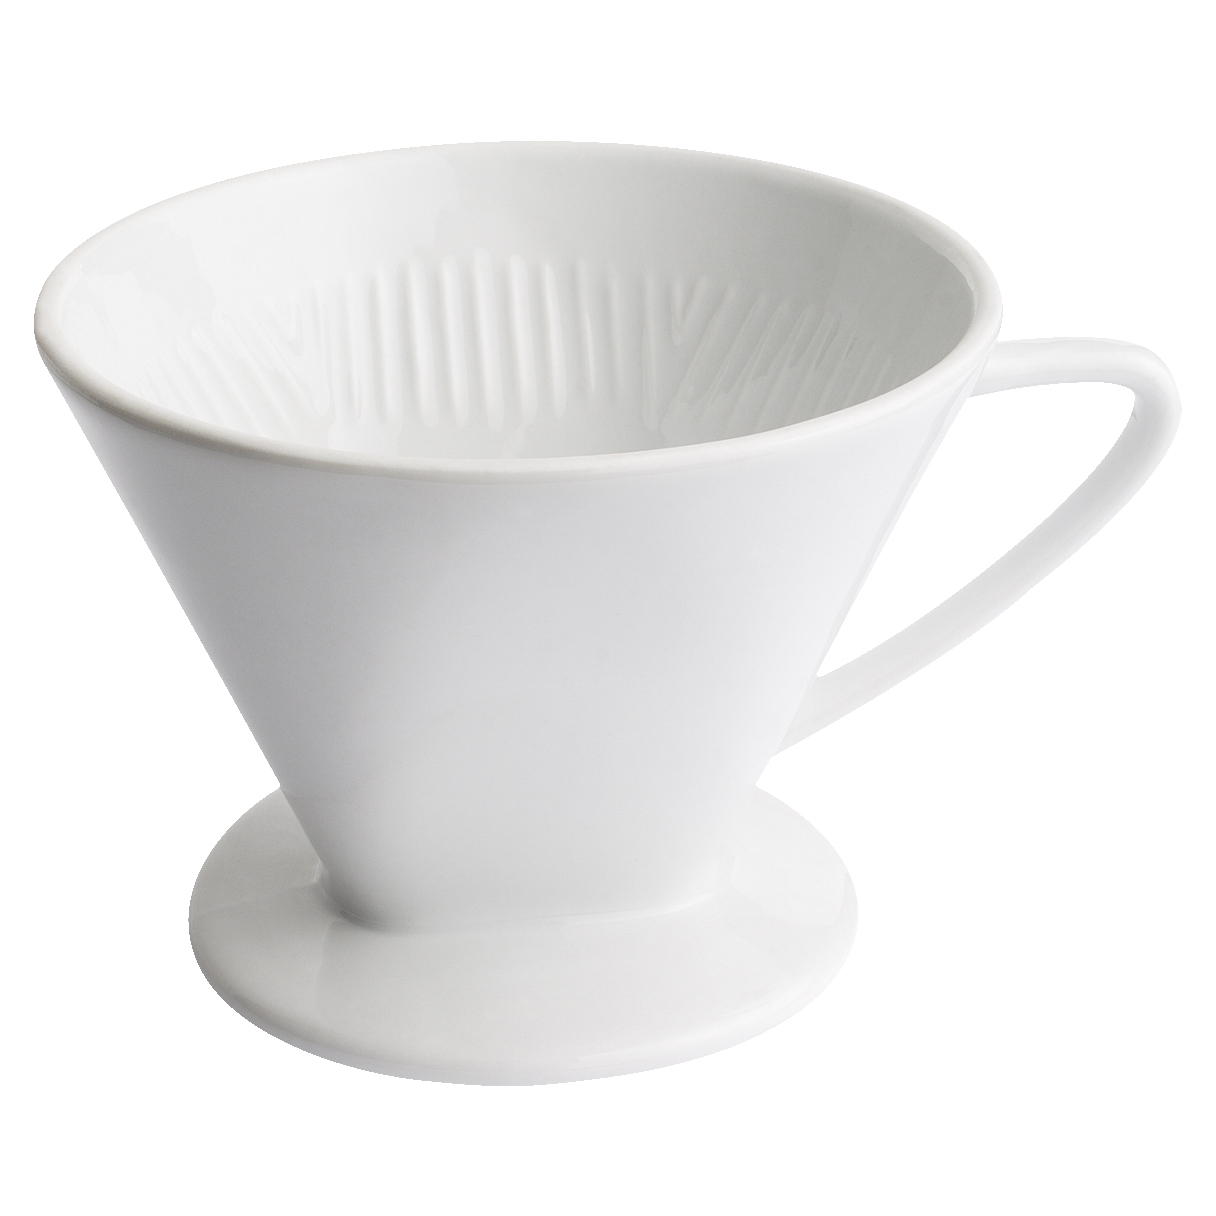 Frieling Cilio Porcelain No. 4 Coffee Filter Holder